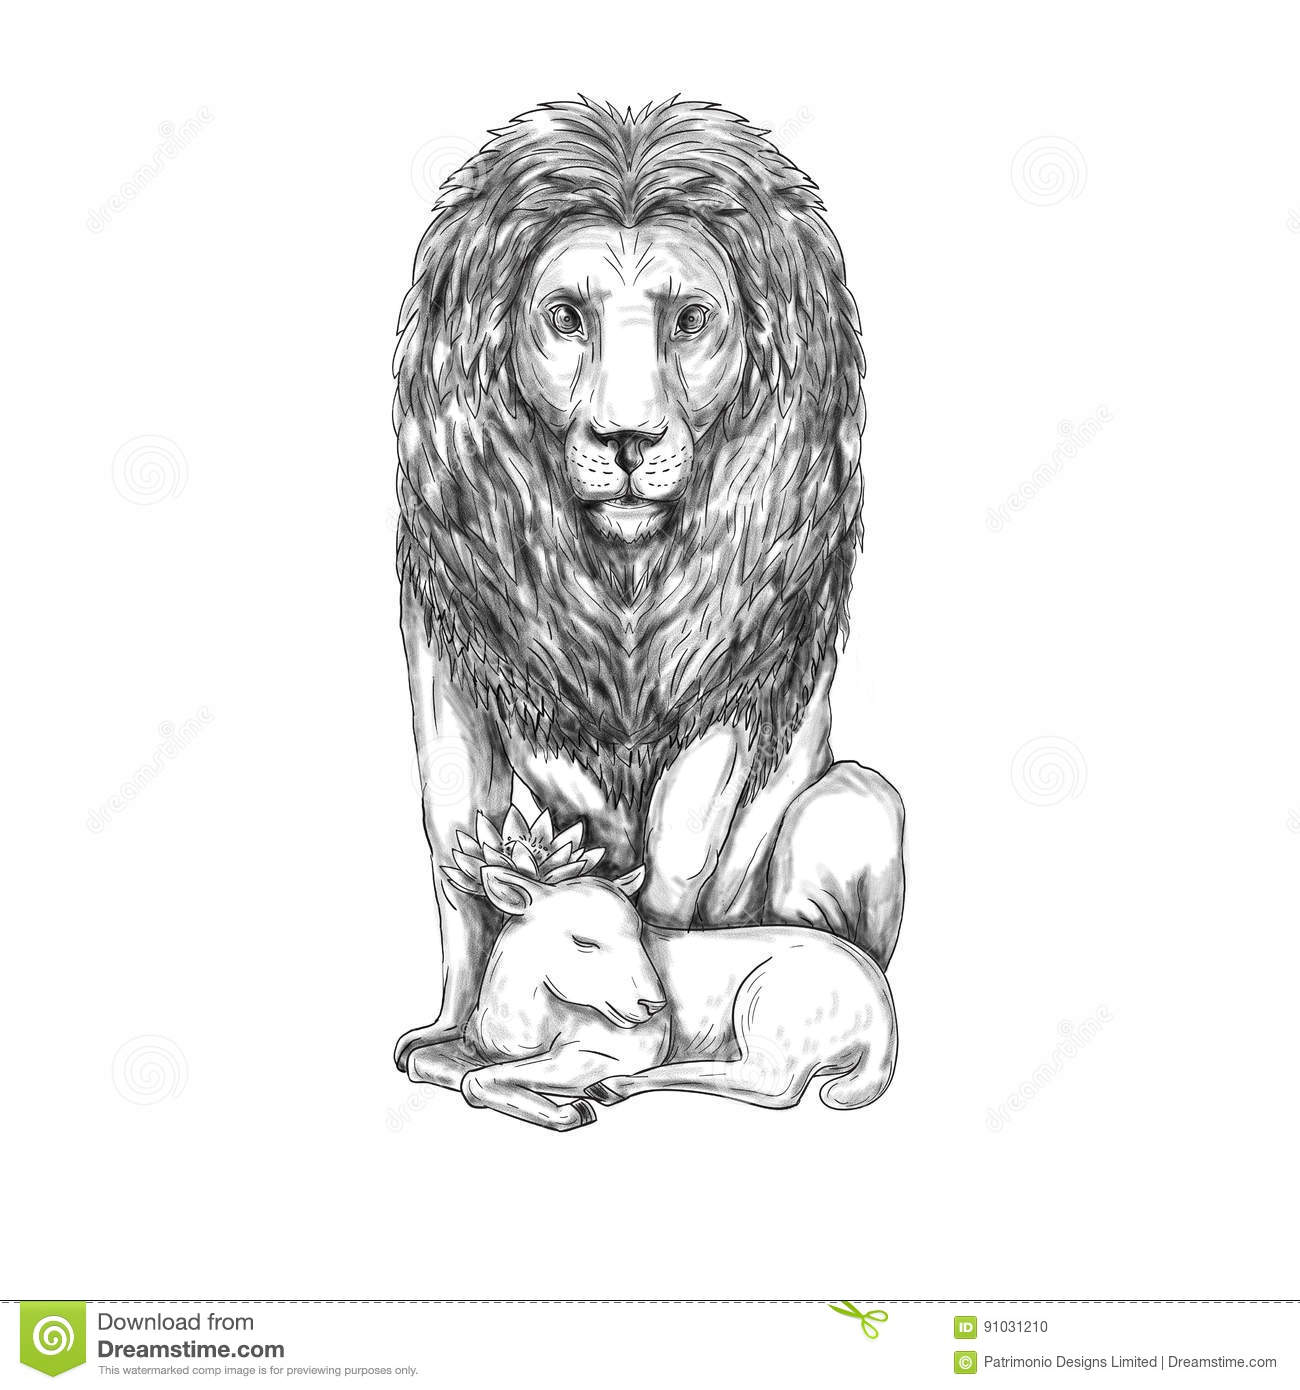 Lion Lamb Stock Illustrations 469 Lion Lamb Stock Illustrations Vectors Clipart Dreamstime A painting i did of a lion with a lamb, to remember the hope of the coming of christ, and better things. dreamstime com